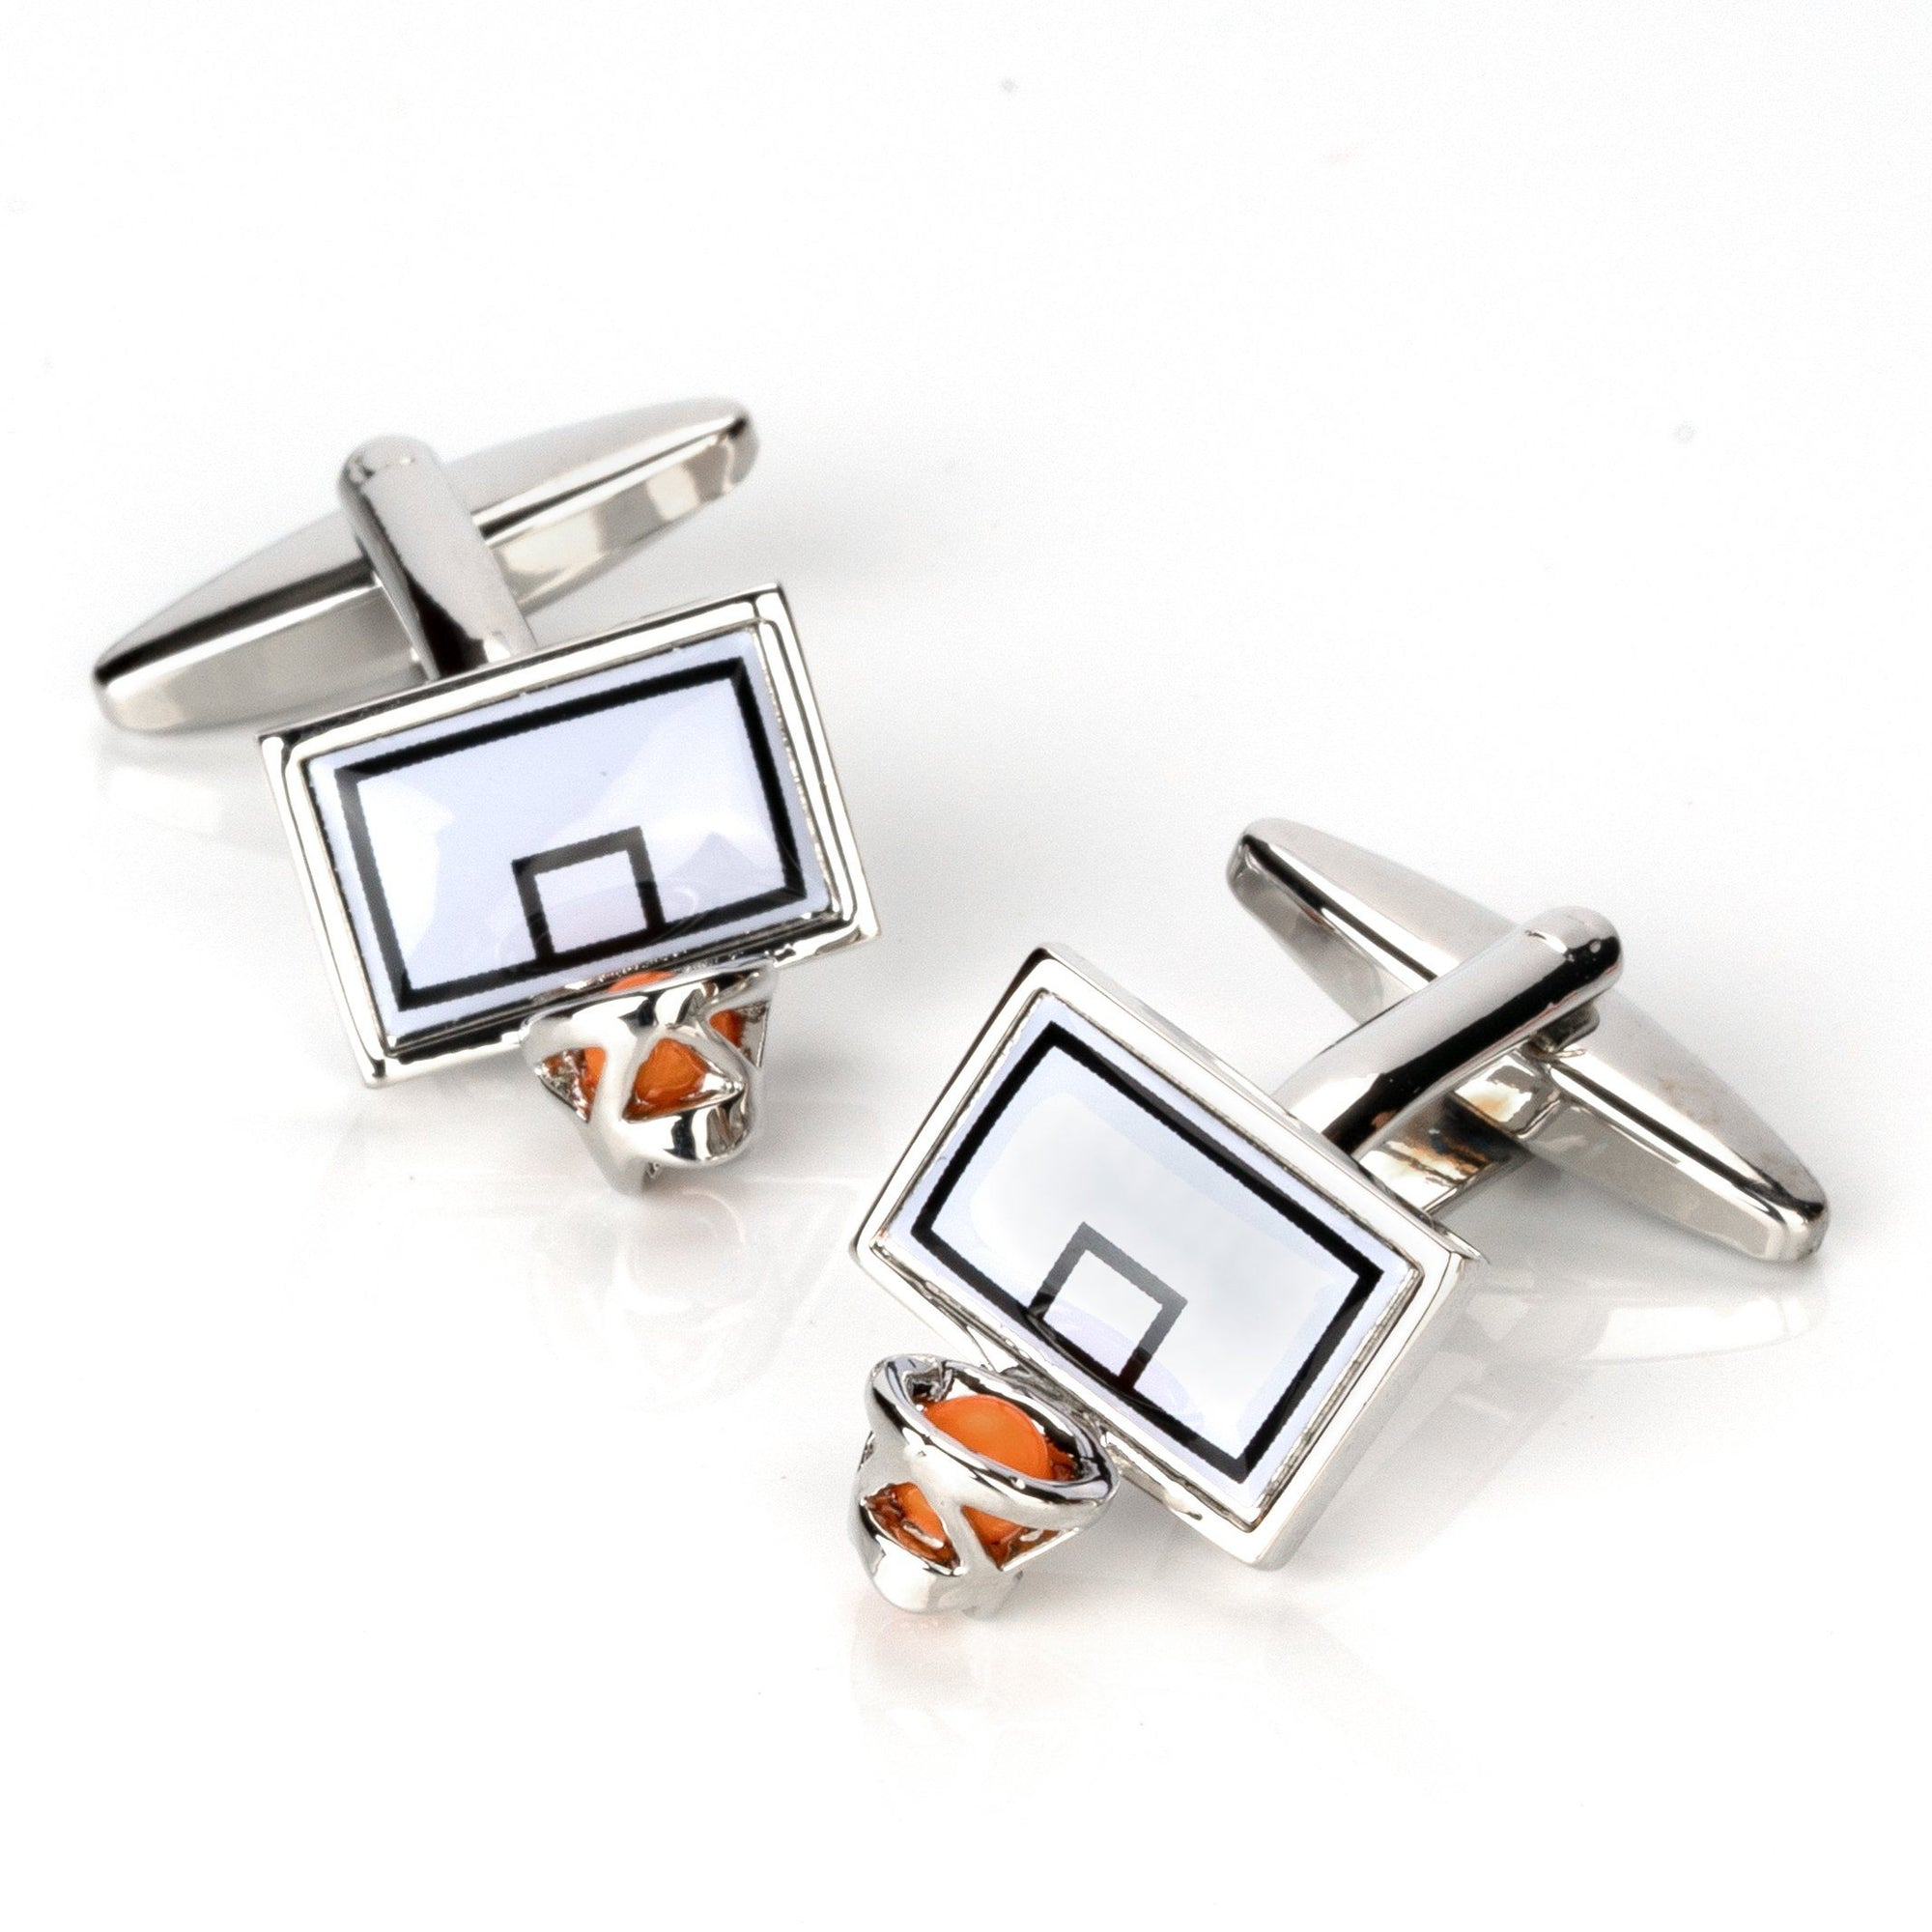 Basketball Backboard and Ring Cufflinks , Novelty Cufflinks , CL4012 , Mens Cufflinks , Cufflinks , Cuffed , Clinks , Clinks Australia